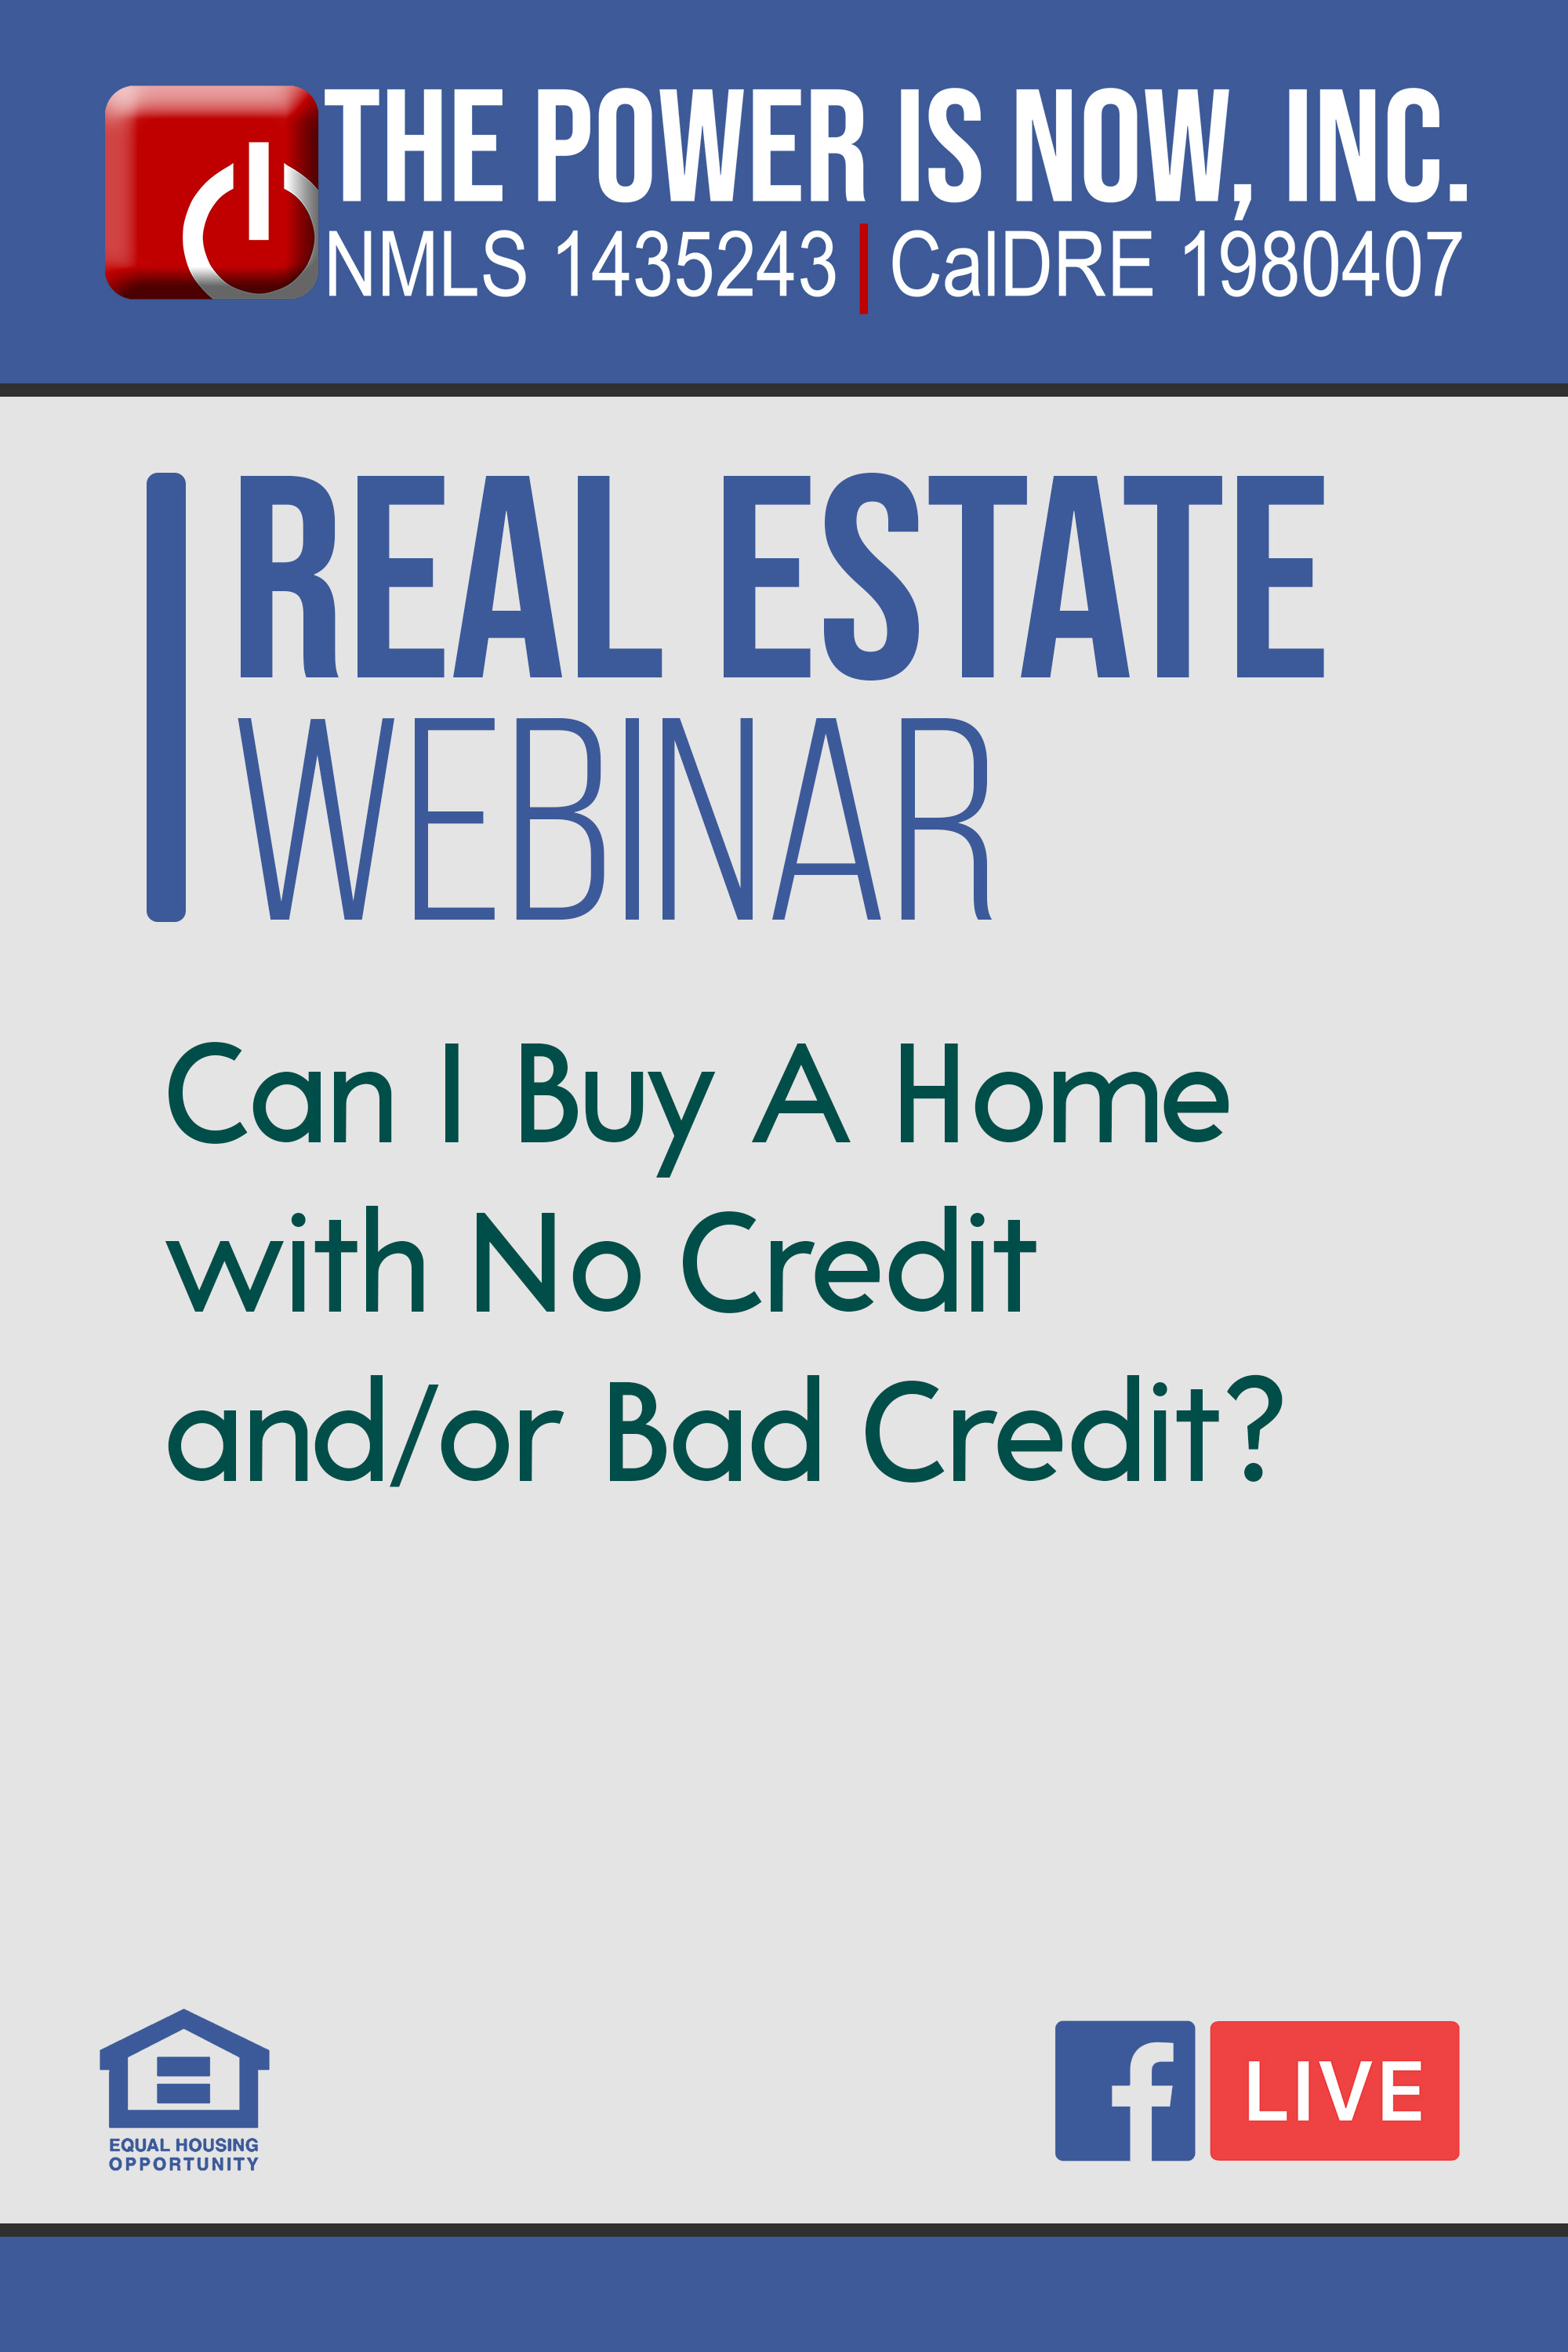 Can I Buy A Home with No Credit and/or Bad Credit?